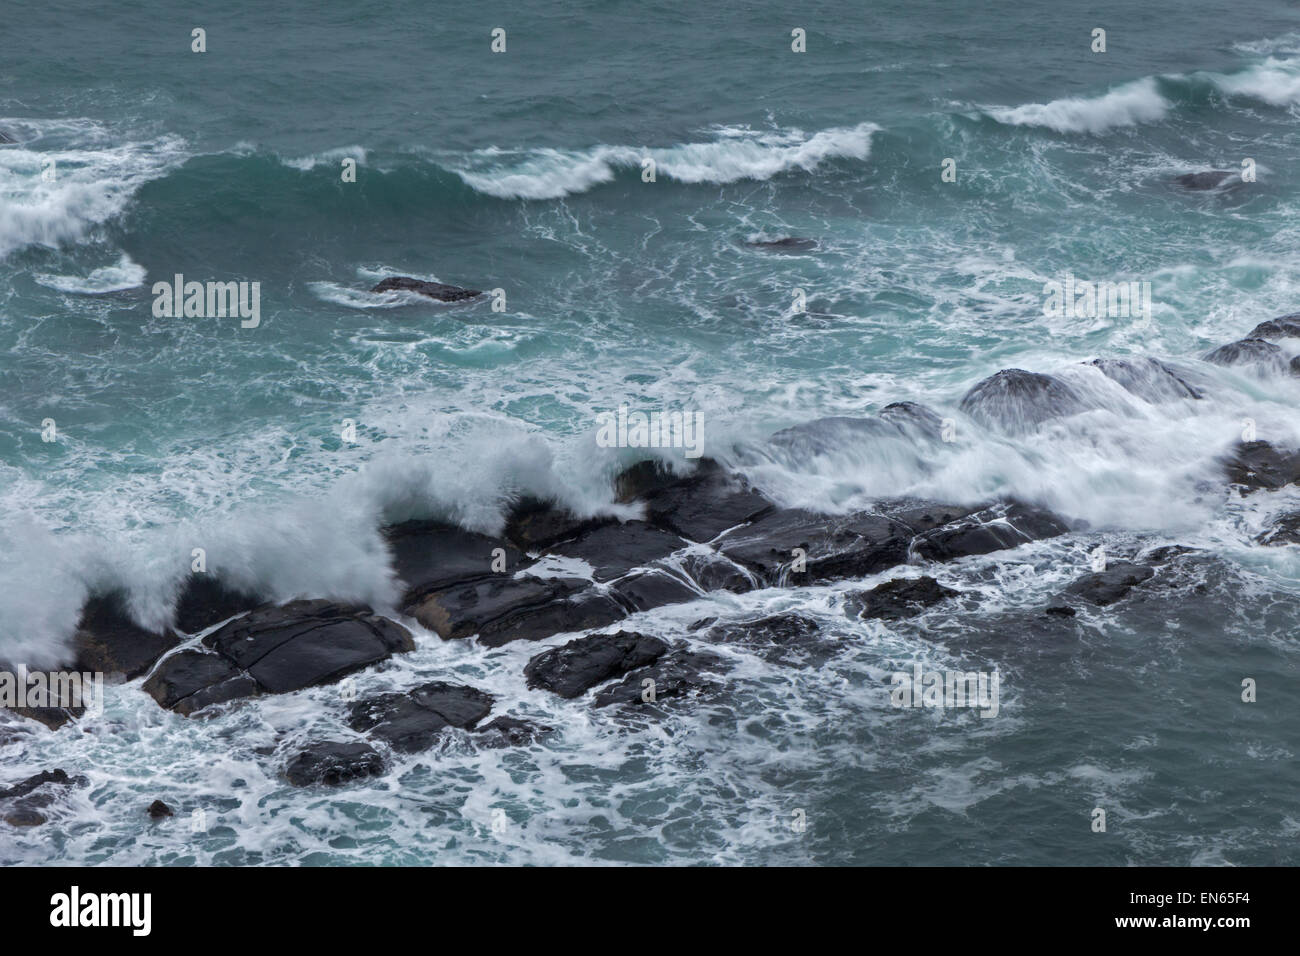 Waves crashing rocks  at an overcast day, viewed slightly from above - Stock Image